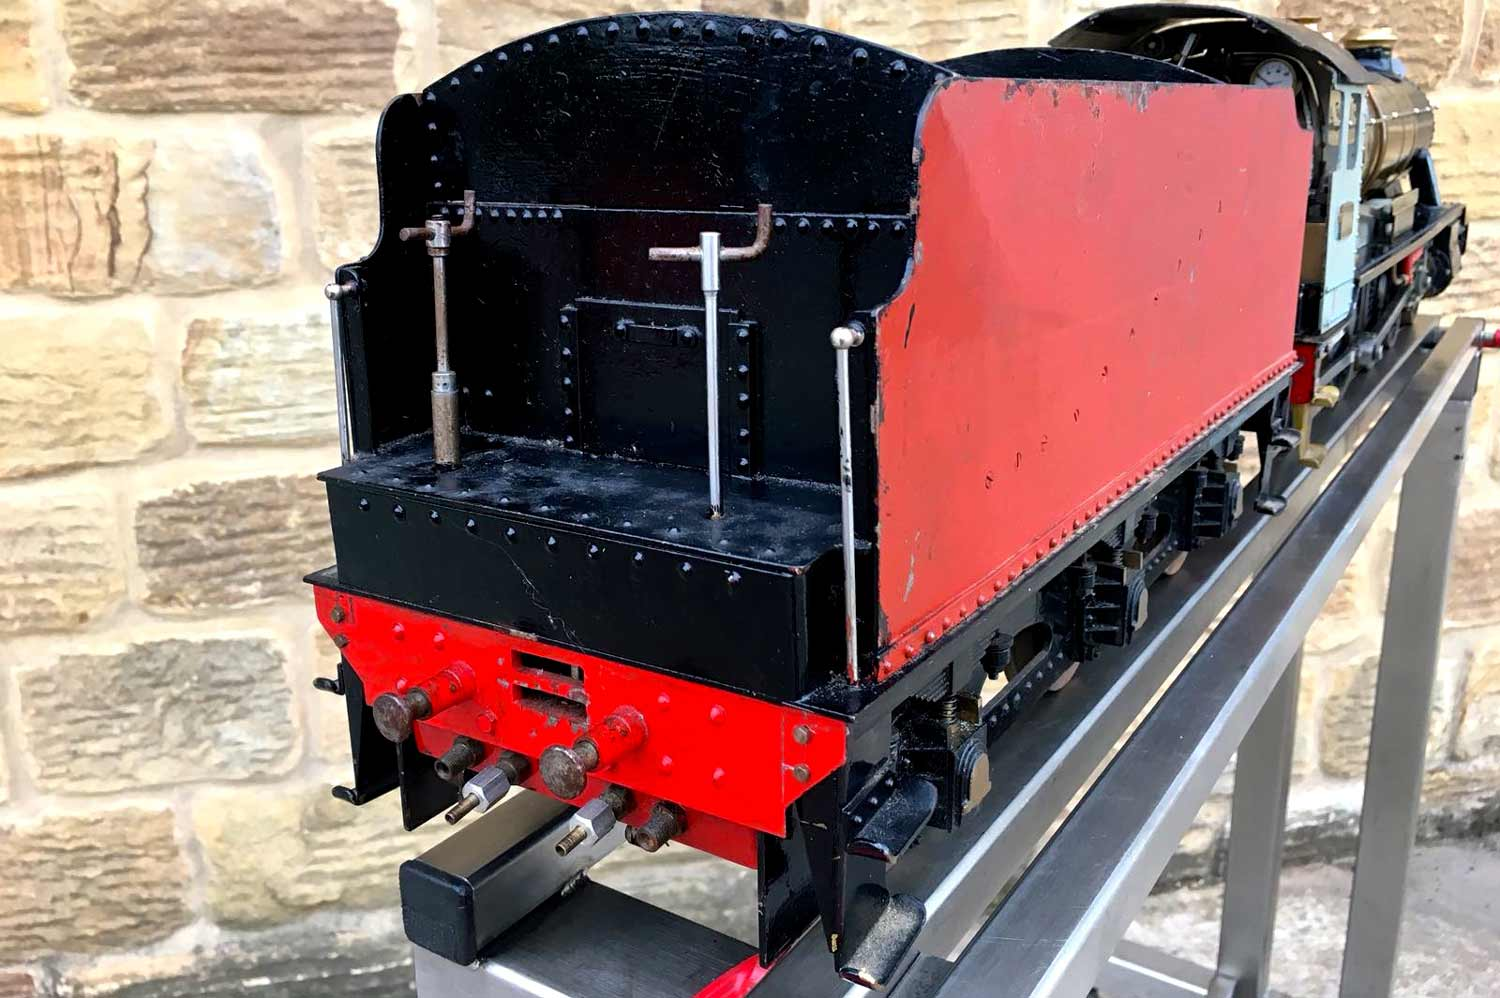 test 3-and-a-half-inch-gauge-GWR-County-Hawksworth-live-steam-locomotive-for-sale-5